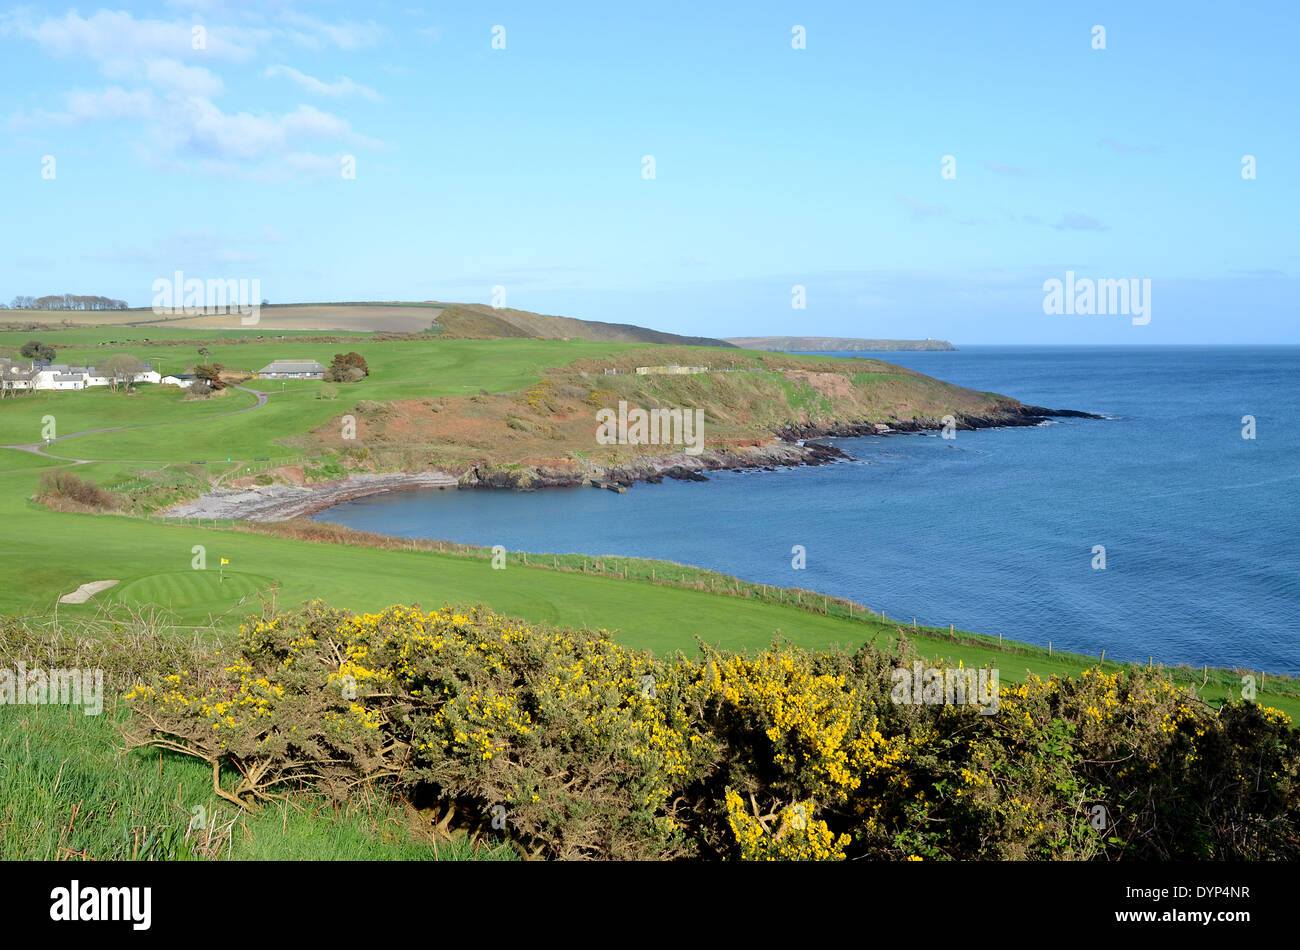 the coastline of county cork in south west ireland - Stock Image